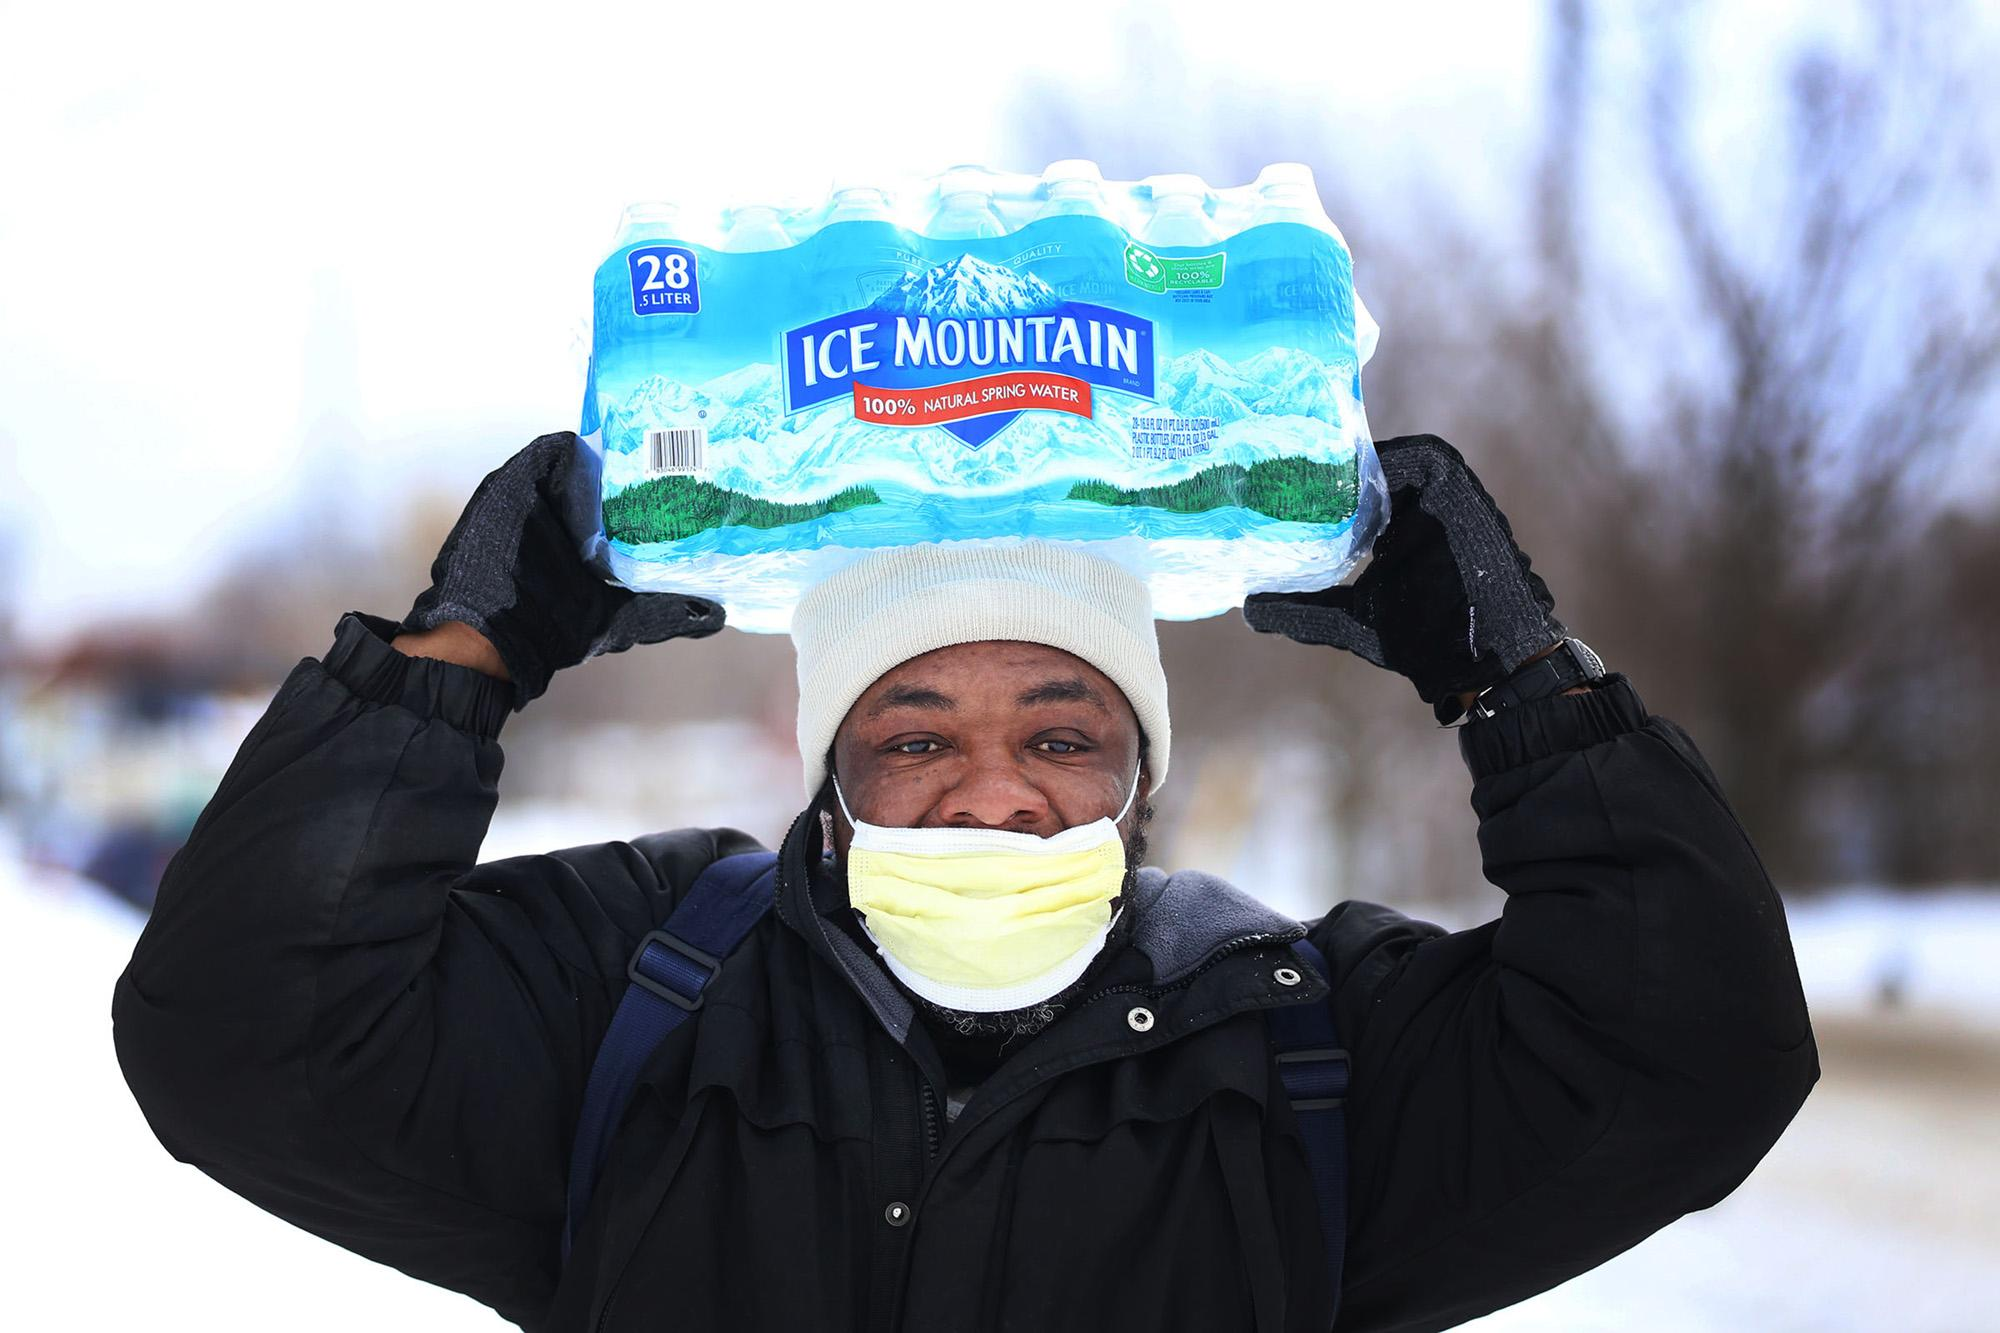 Students+and+faculty+at+the+University+were+inspired+by+various+connections+to+Flint%2C+MI%26nbsp%3Bto+raise+%241%2C278+for+residents+of+the+city.